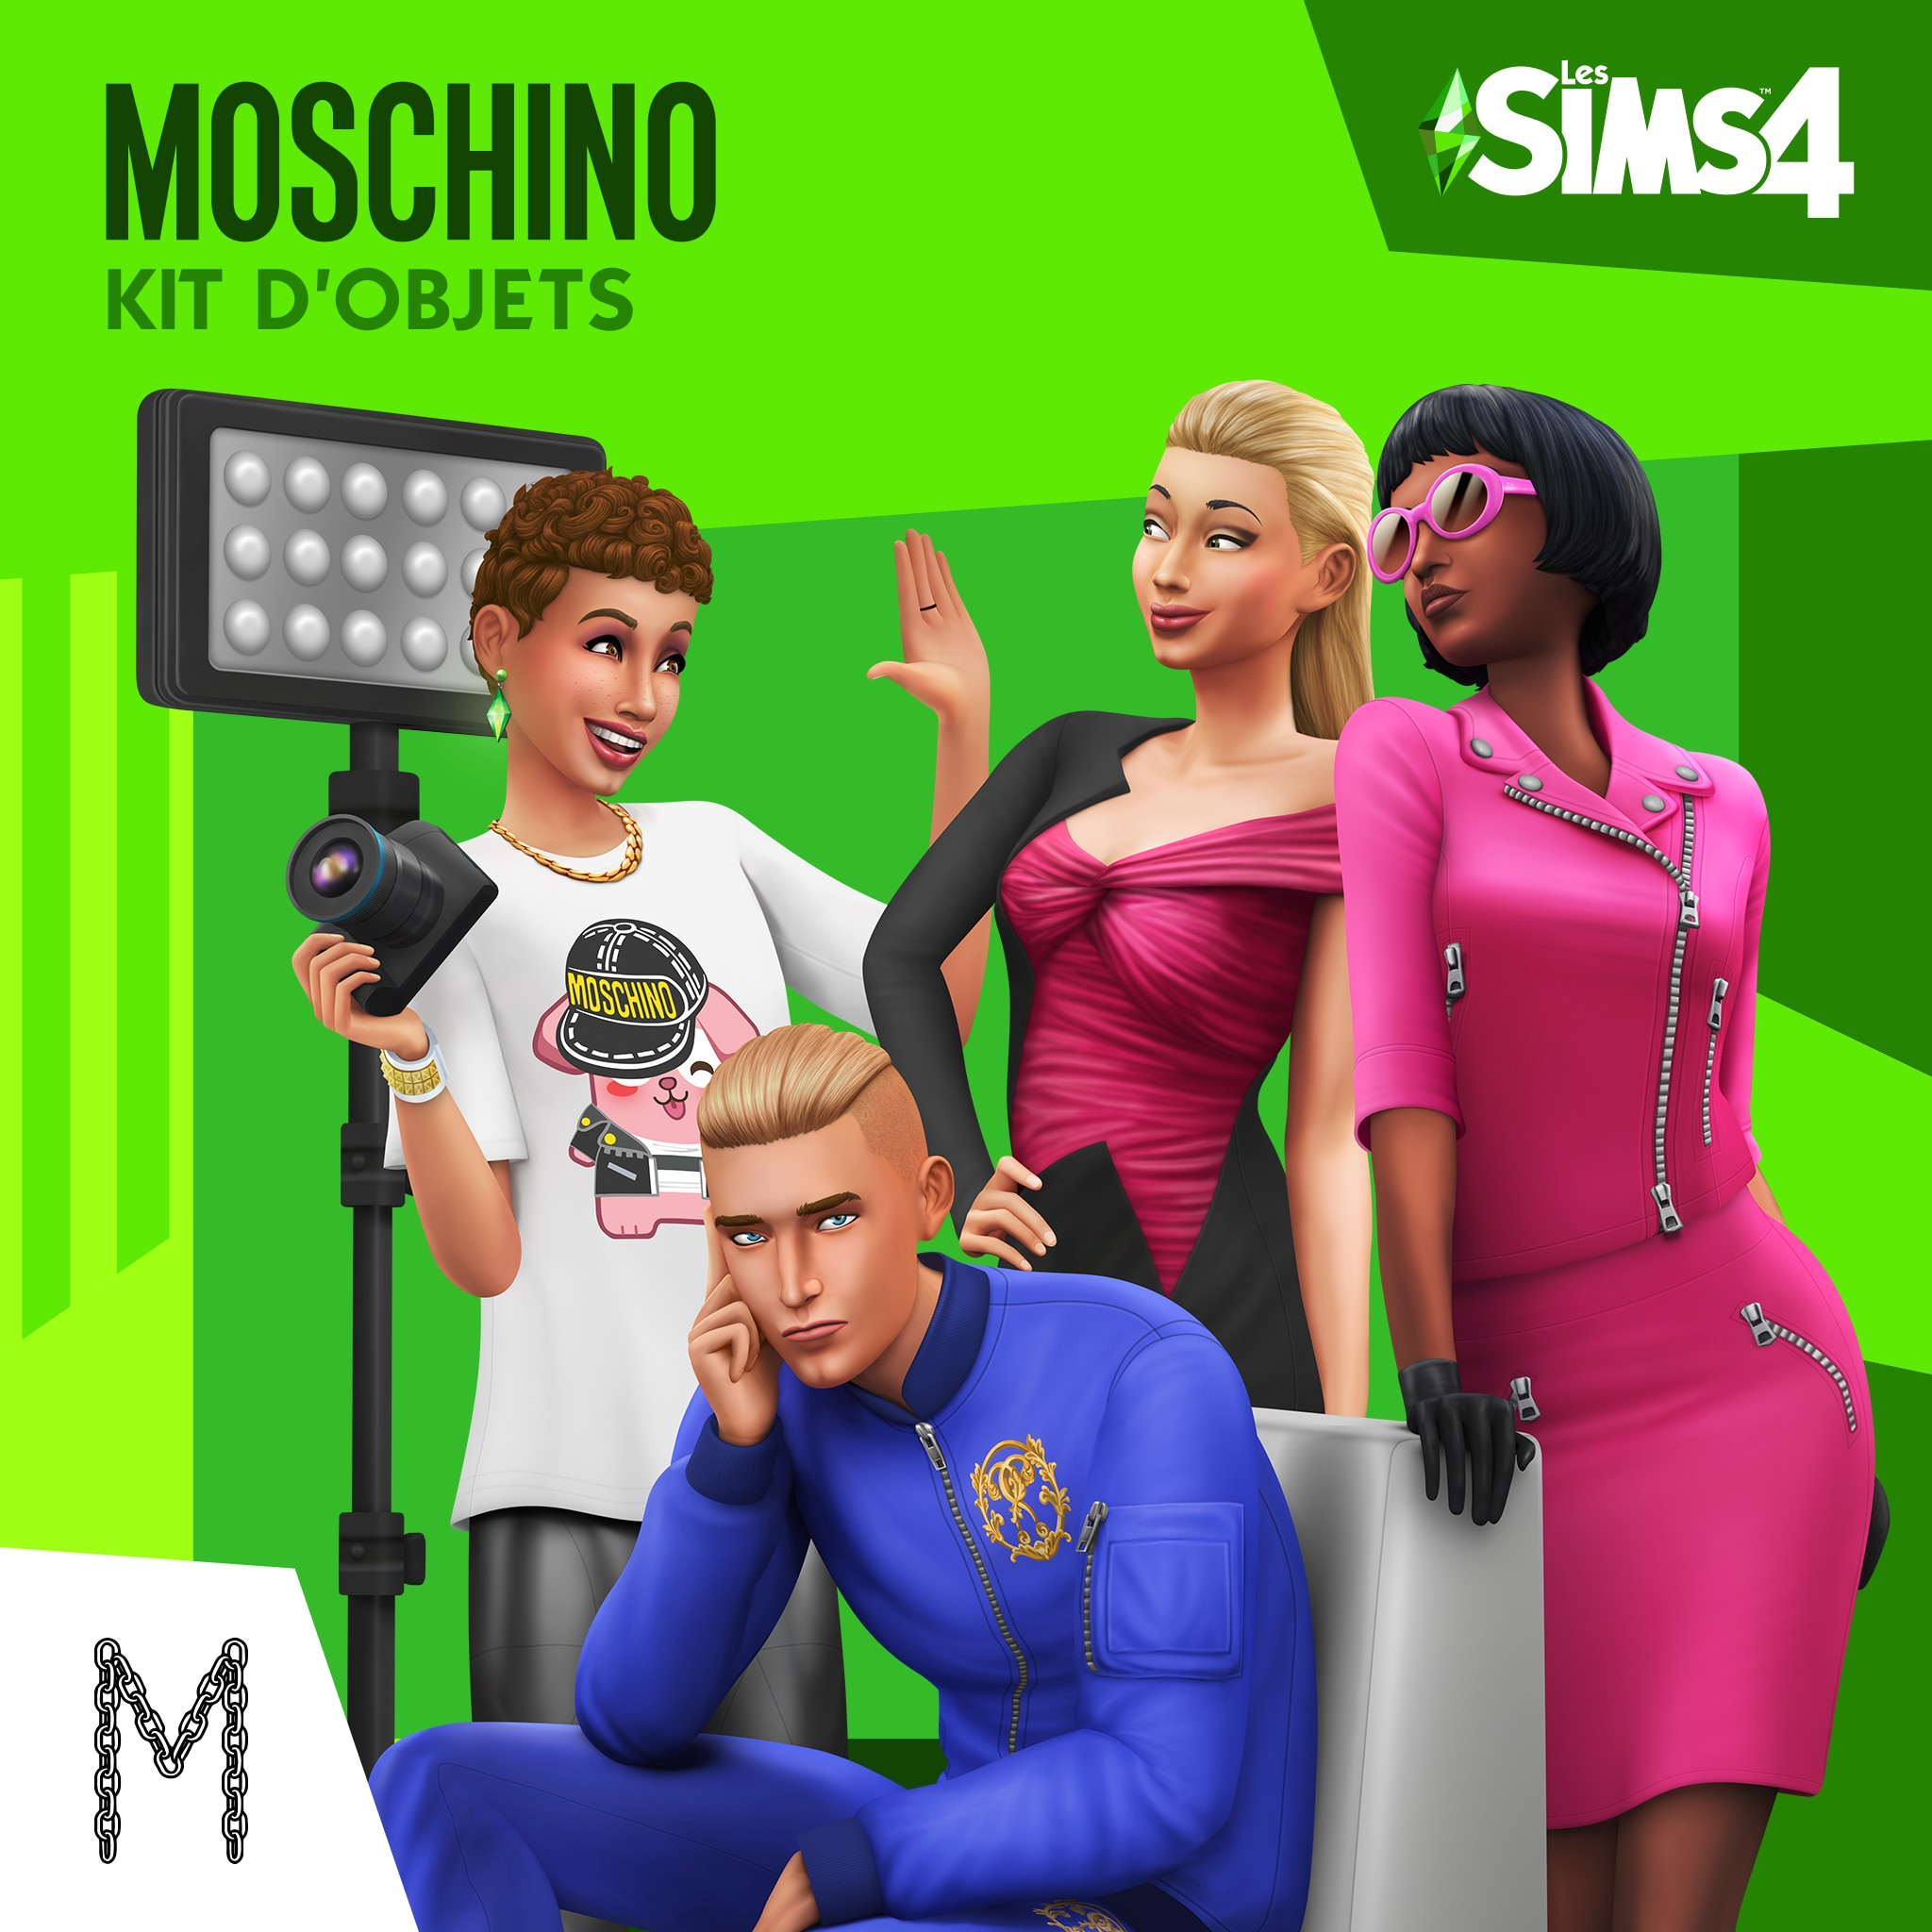 Les Sims™ 4 Moschino Kit d'Objets